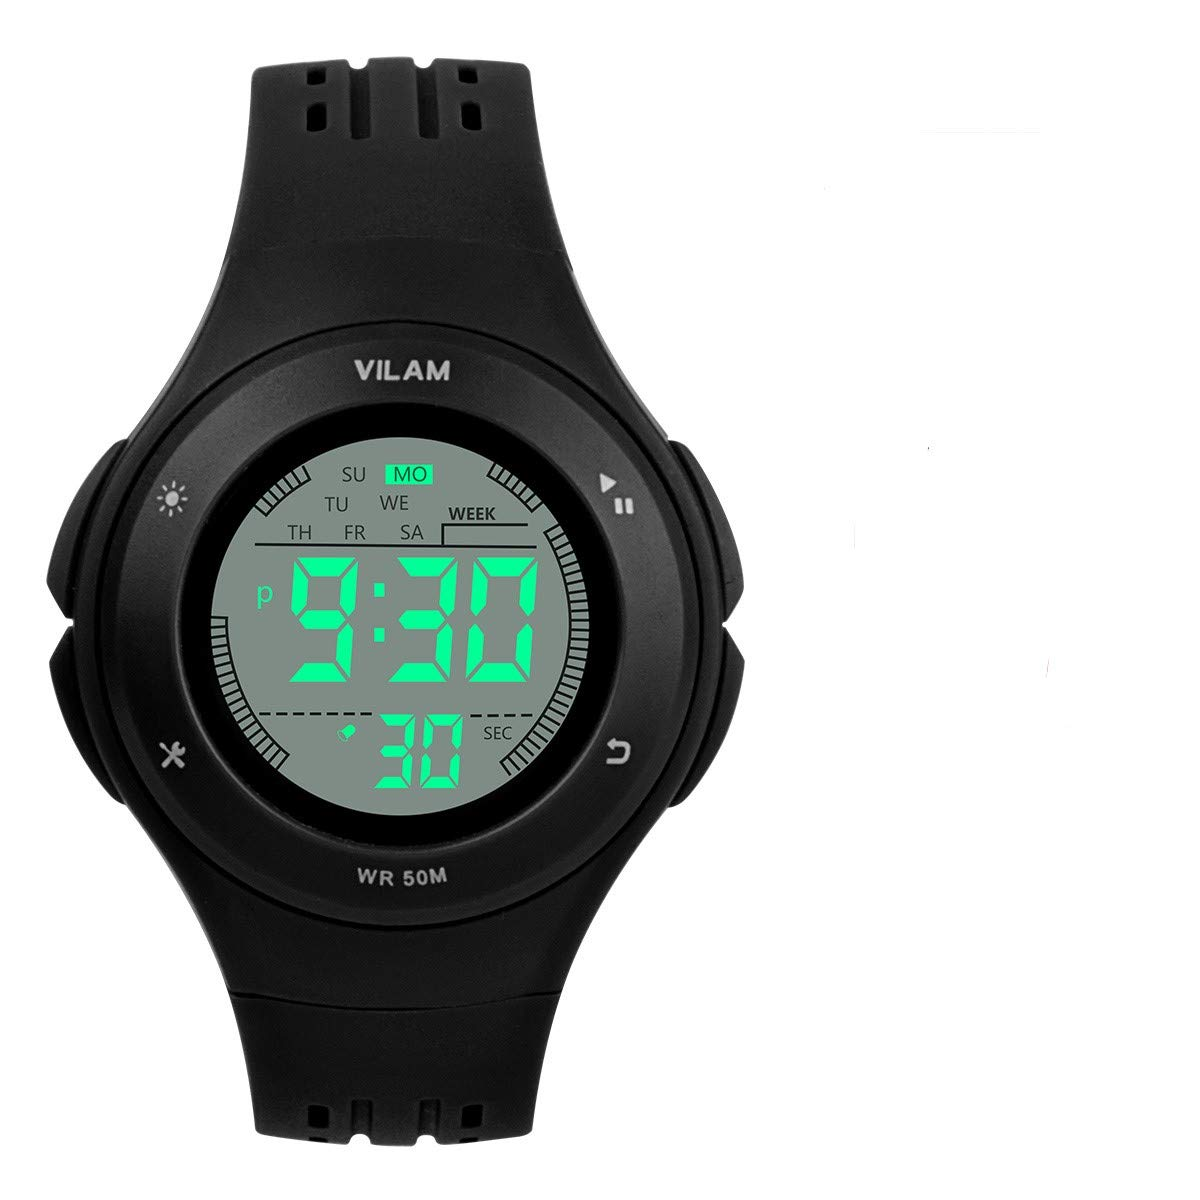 Kids Watch Waterproof Children Electronic Watch - Lighting Watch 50M Waterproof for Outdoor Sports,LED Digital Stopwatch with Chronograph, Alarm, Child Wrist Watch for Boys, Girls - PerSuper (Black) by PERSUPER